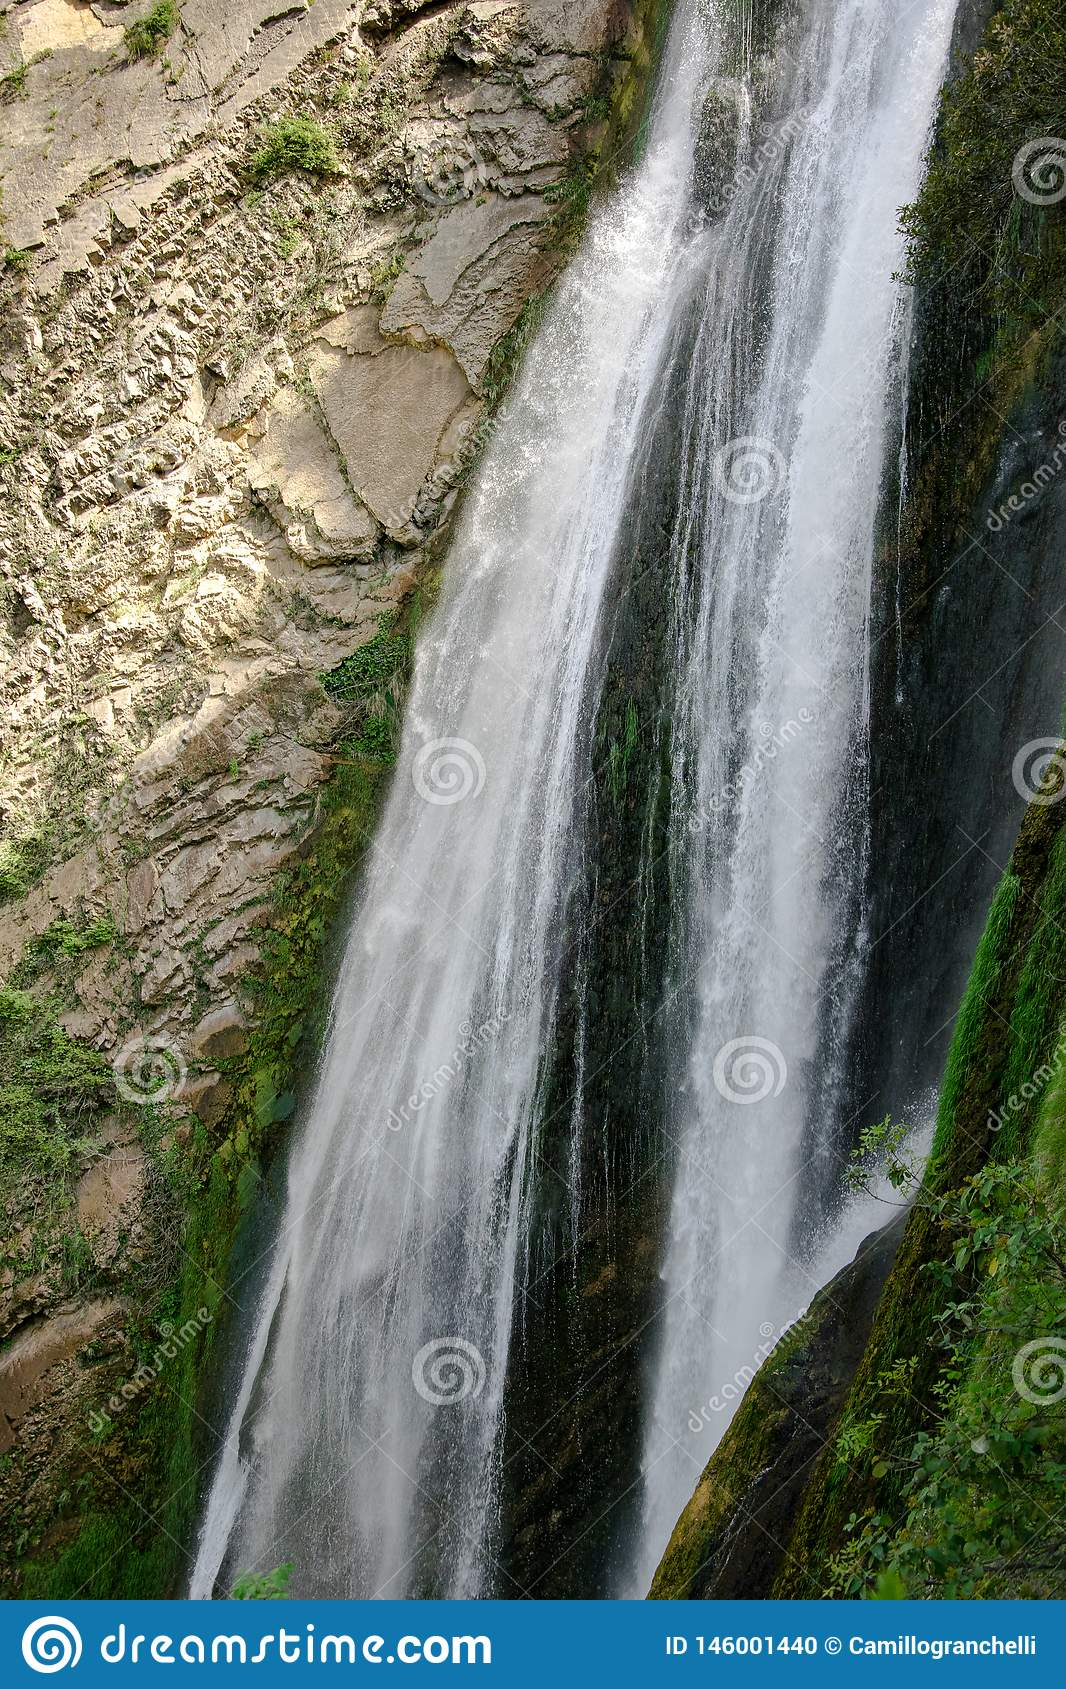 One of the highest waterfalls in Italy